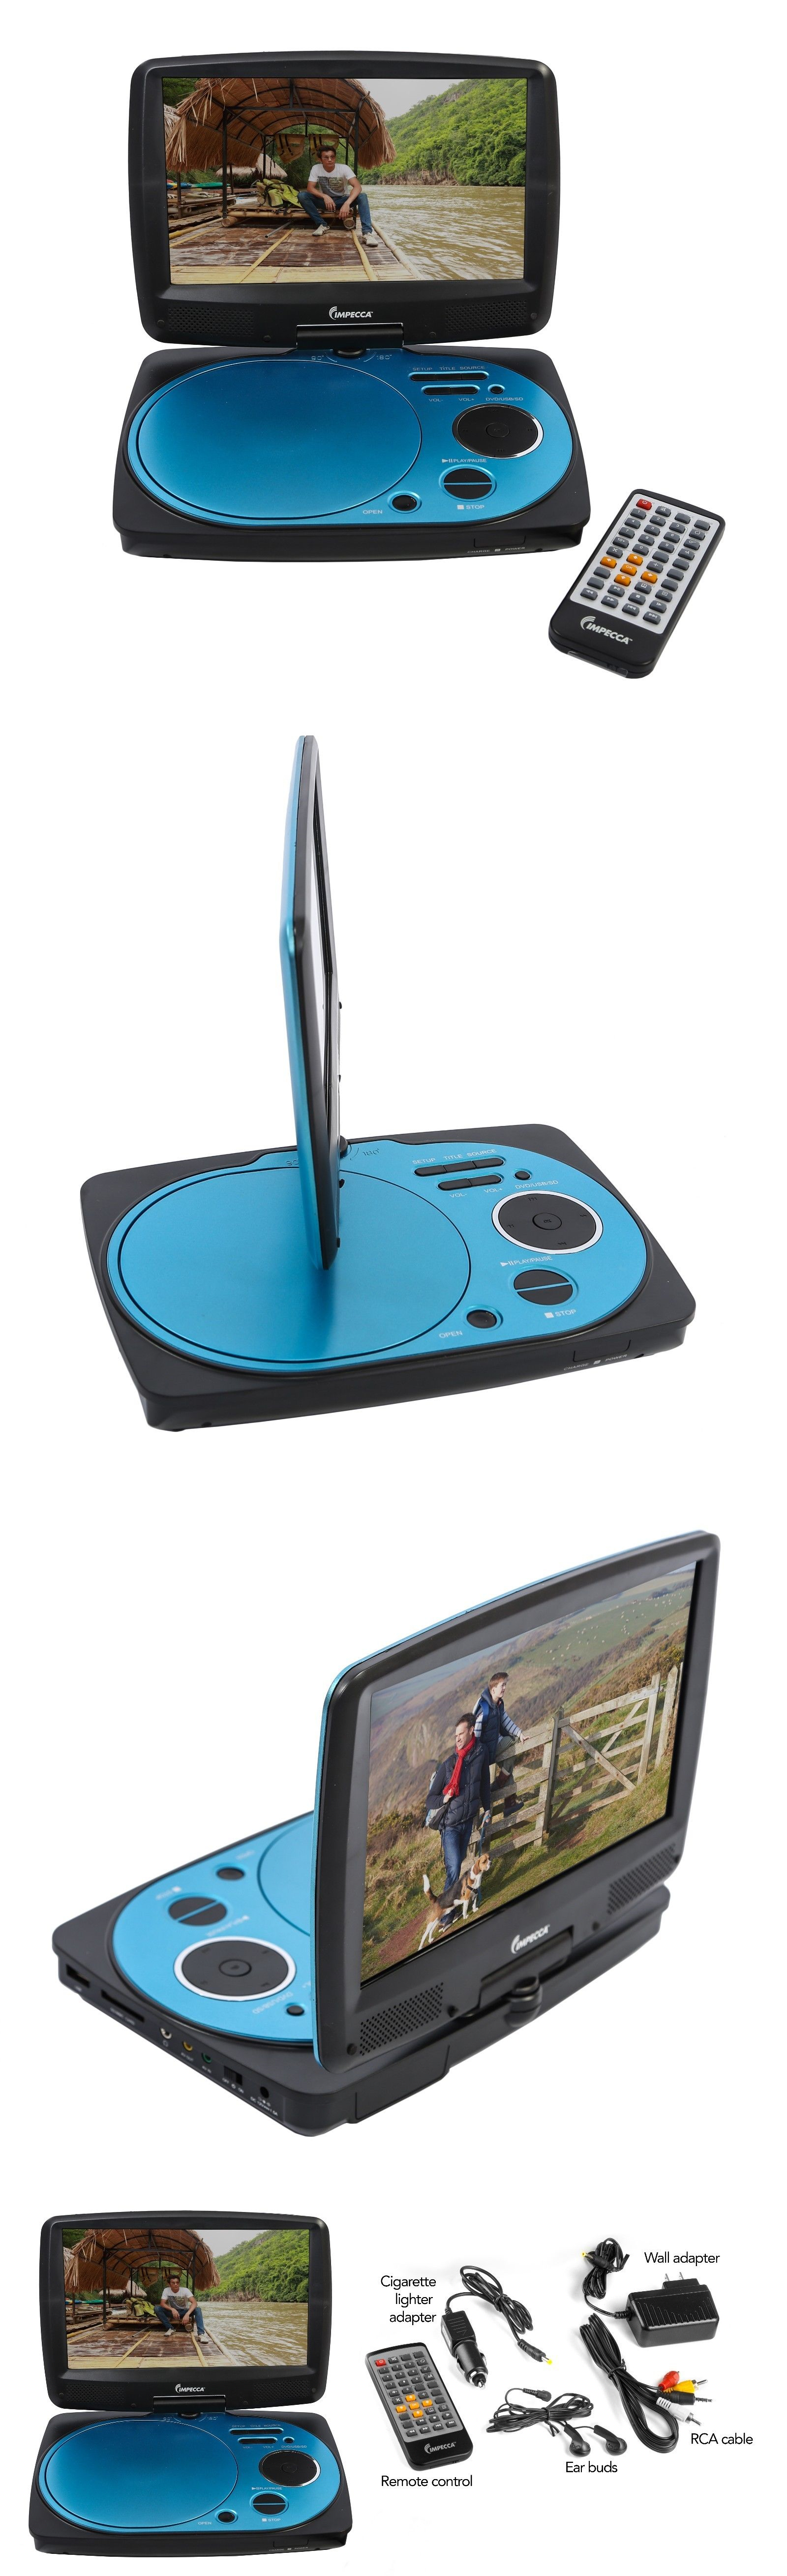 DVD and Blu-ray Players: Impecca 9 Inch Swivel Portable Dvd Player ...